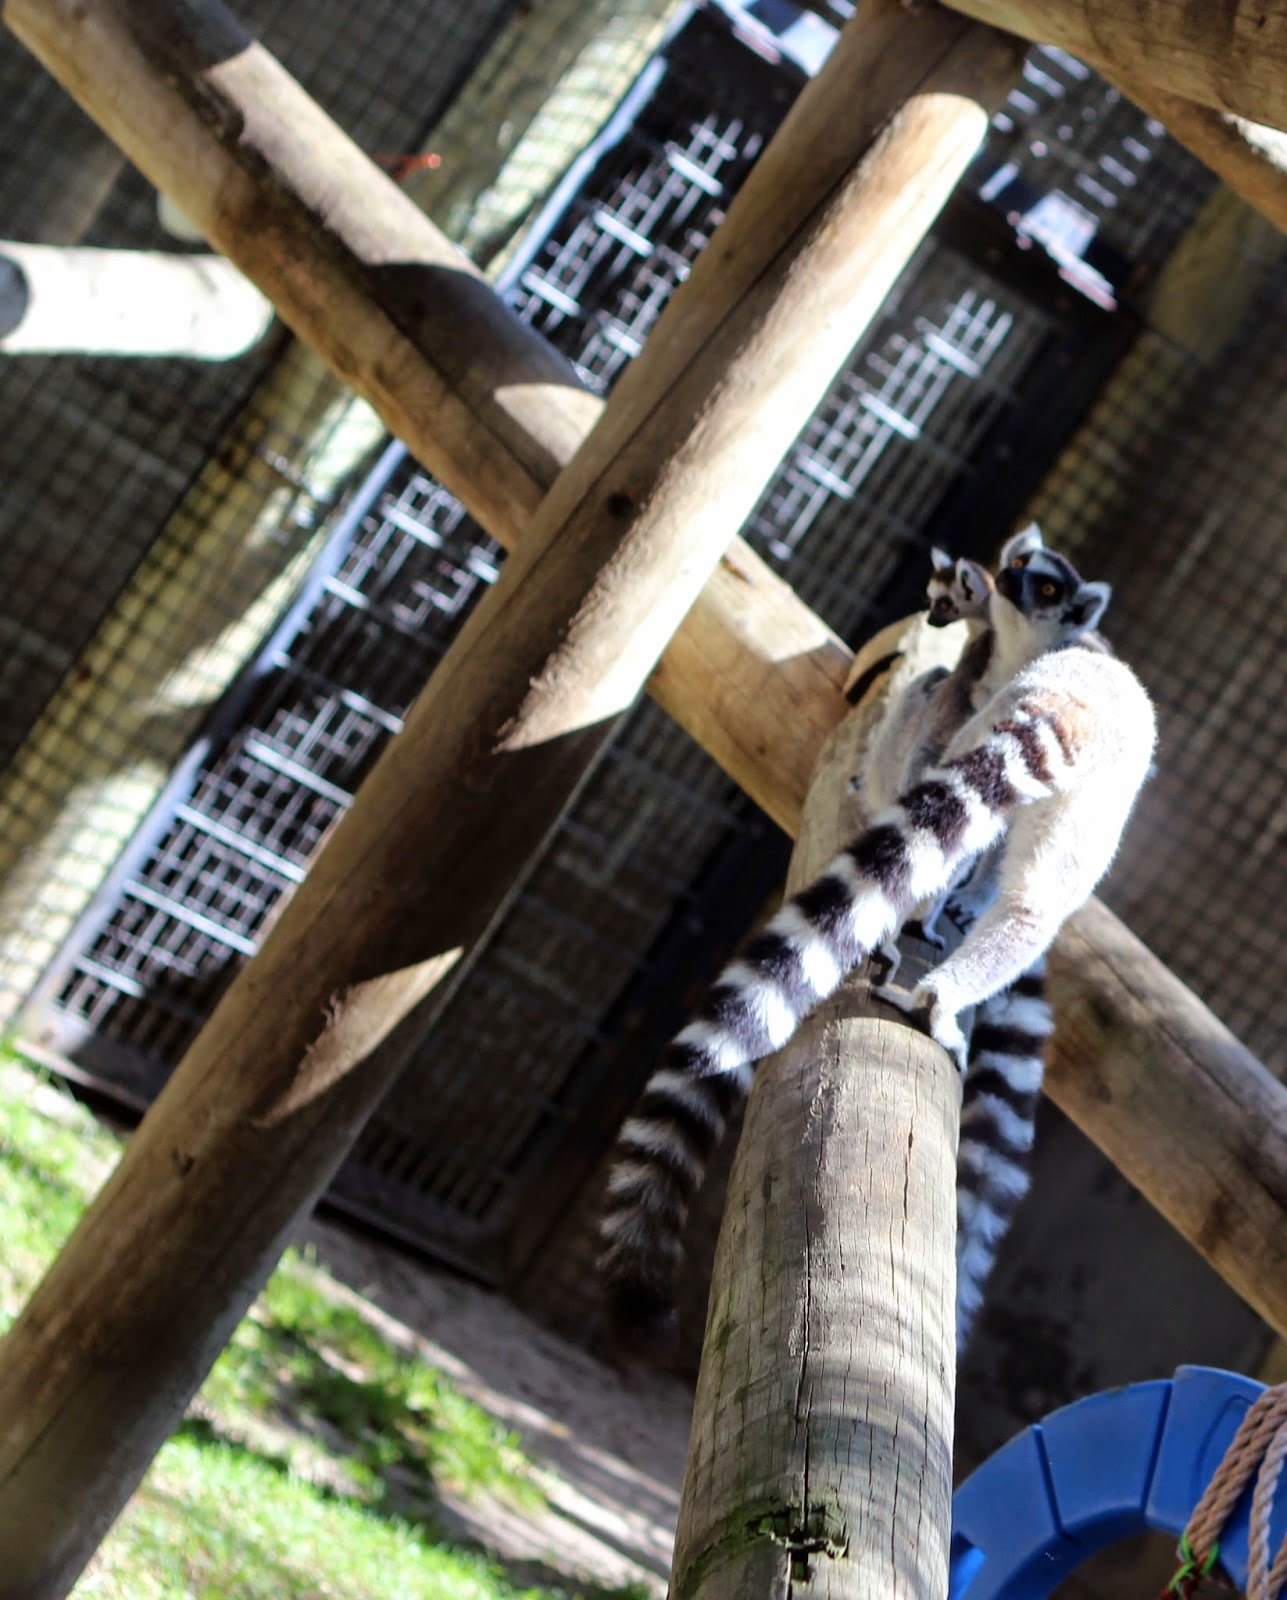 Ring-tailed lemur at the Lincoln Children's Zoo